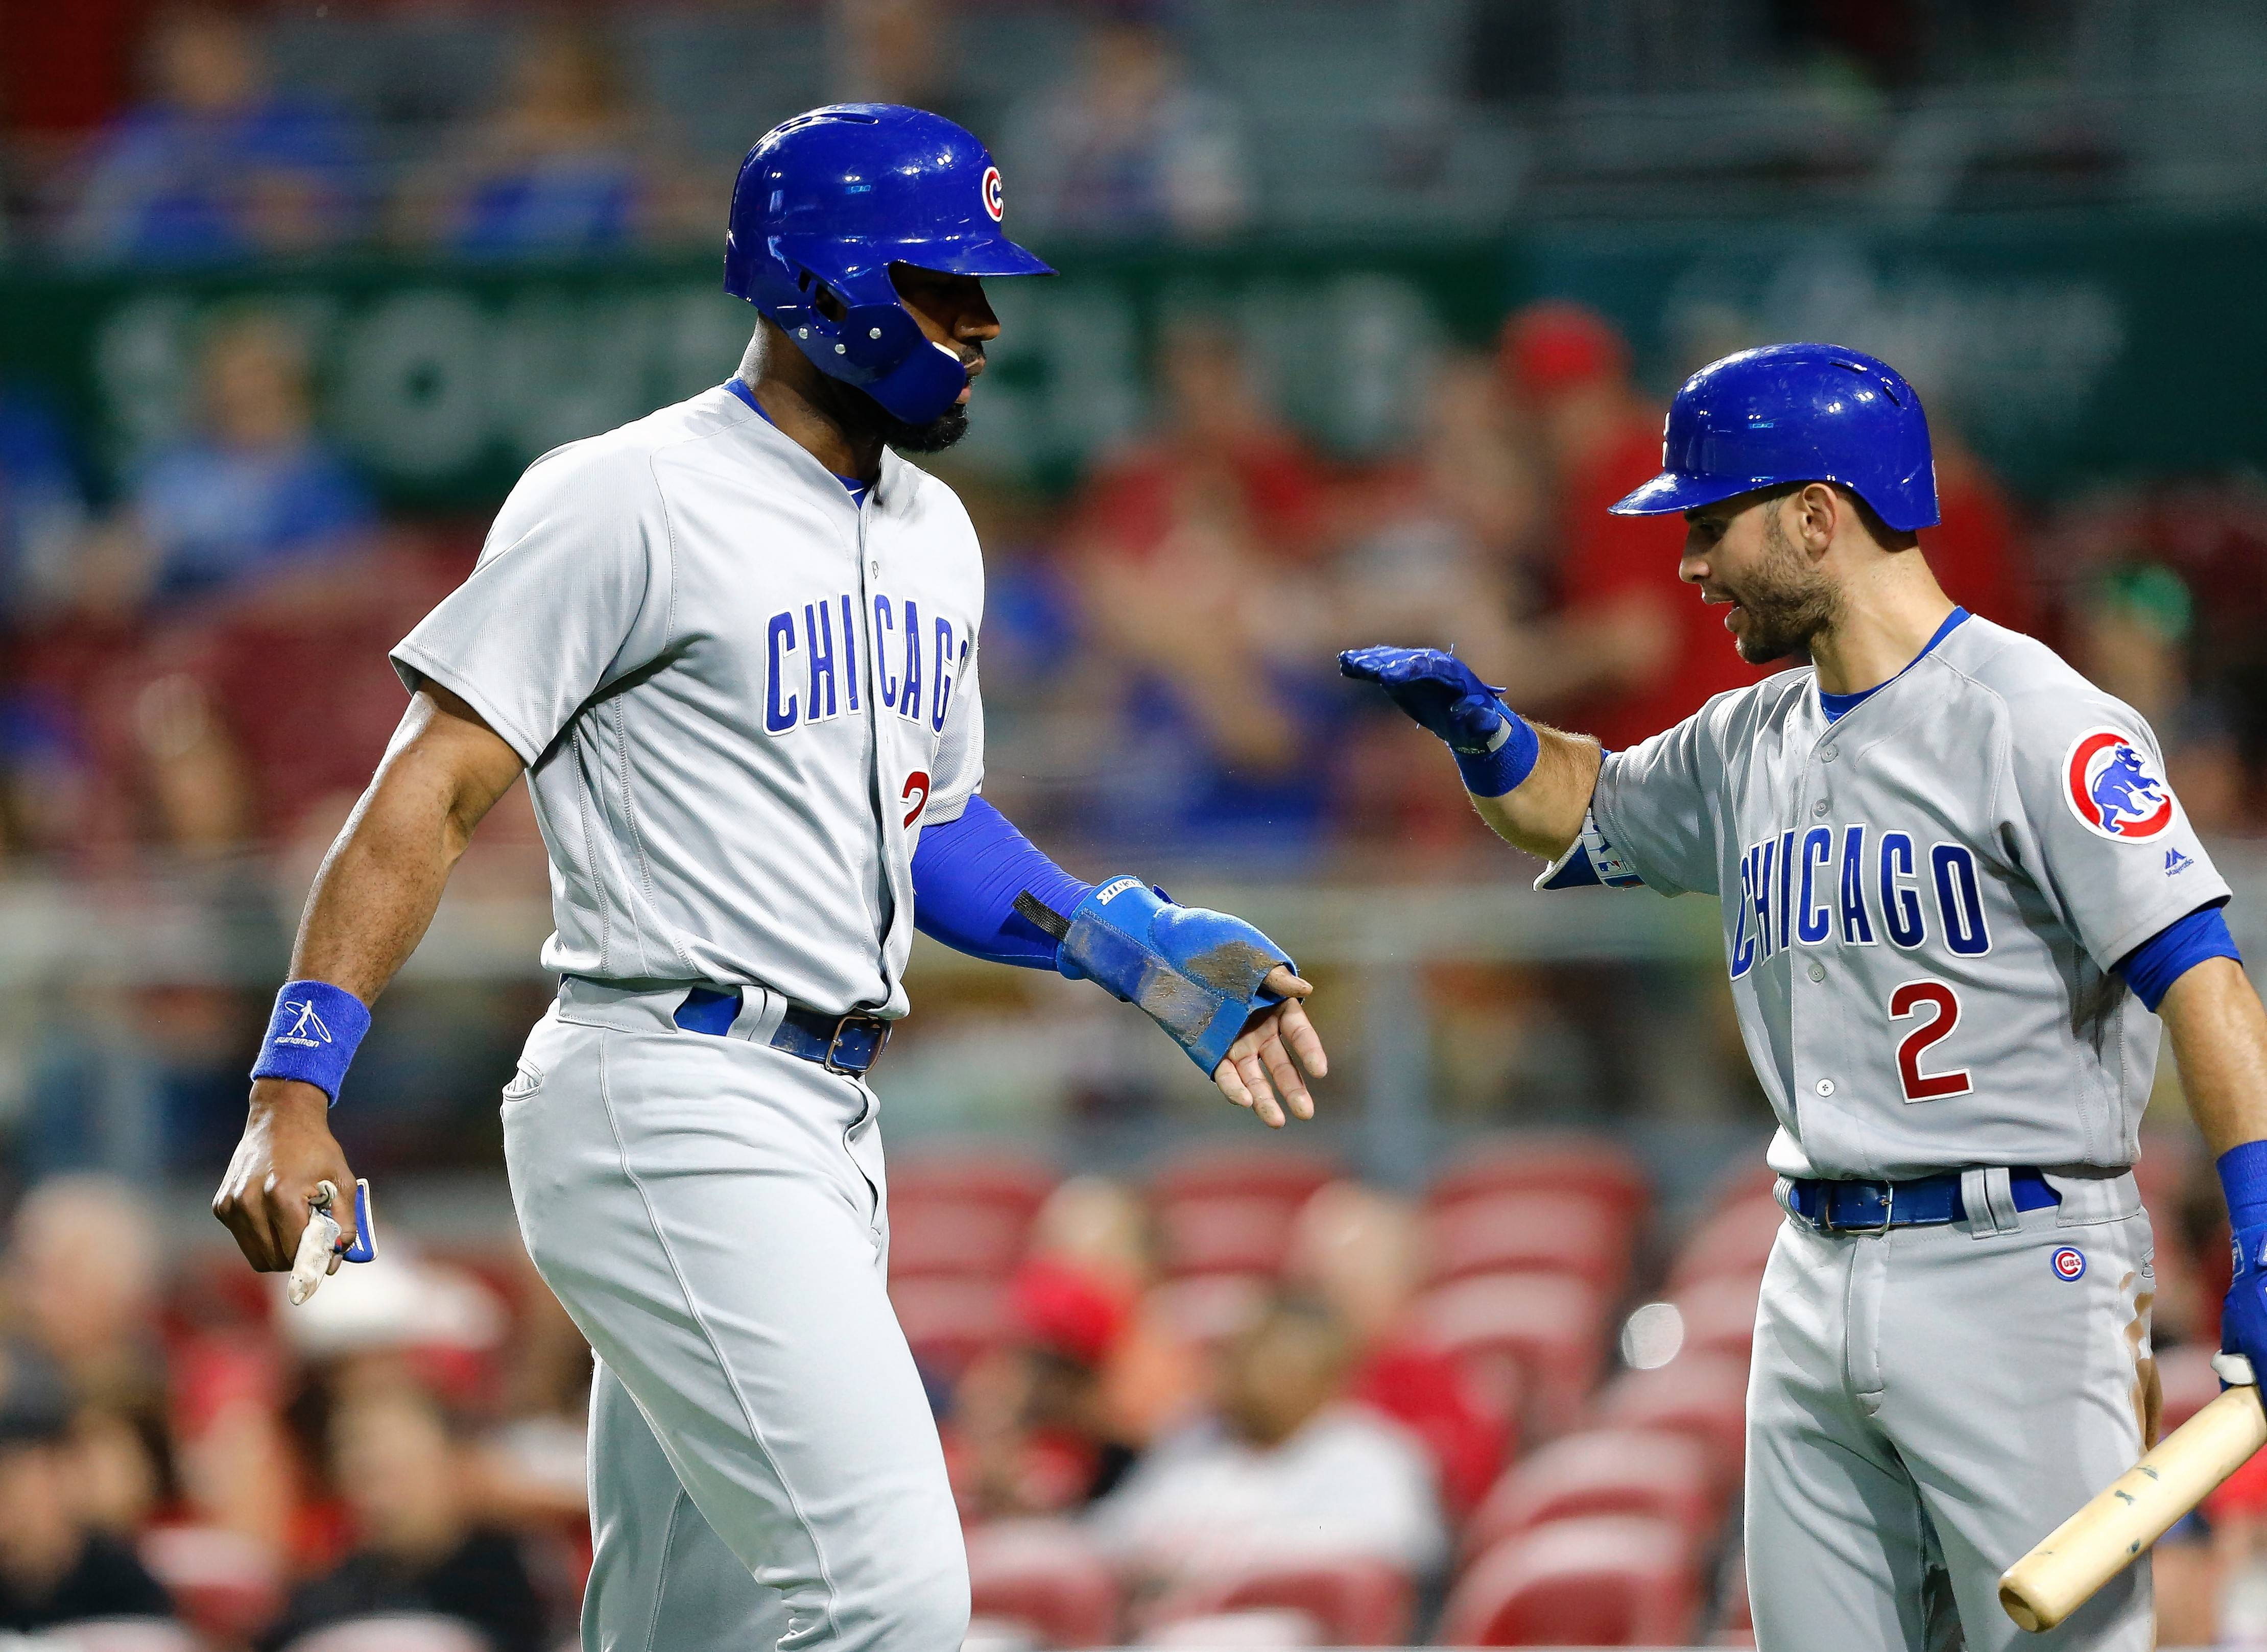 Chicago Cubs' Jason Heyward, left, is congratulated by Tommy La Stella (2) after scoring on a double by Albert Almora Jr. against the Cincinnati Reds during the ninth inning in the second baseball game of a doubleheader, Saturday, May 19, 2018, in Cincinnati. The Cubs won 10-0.